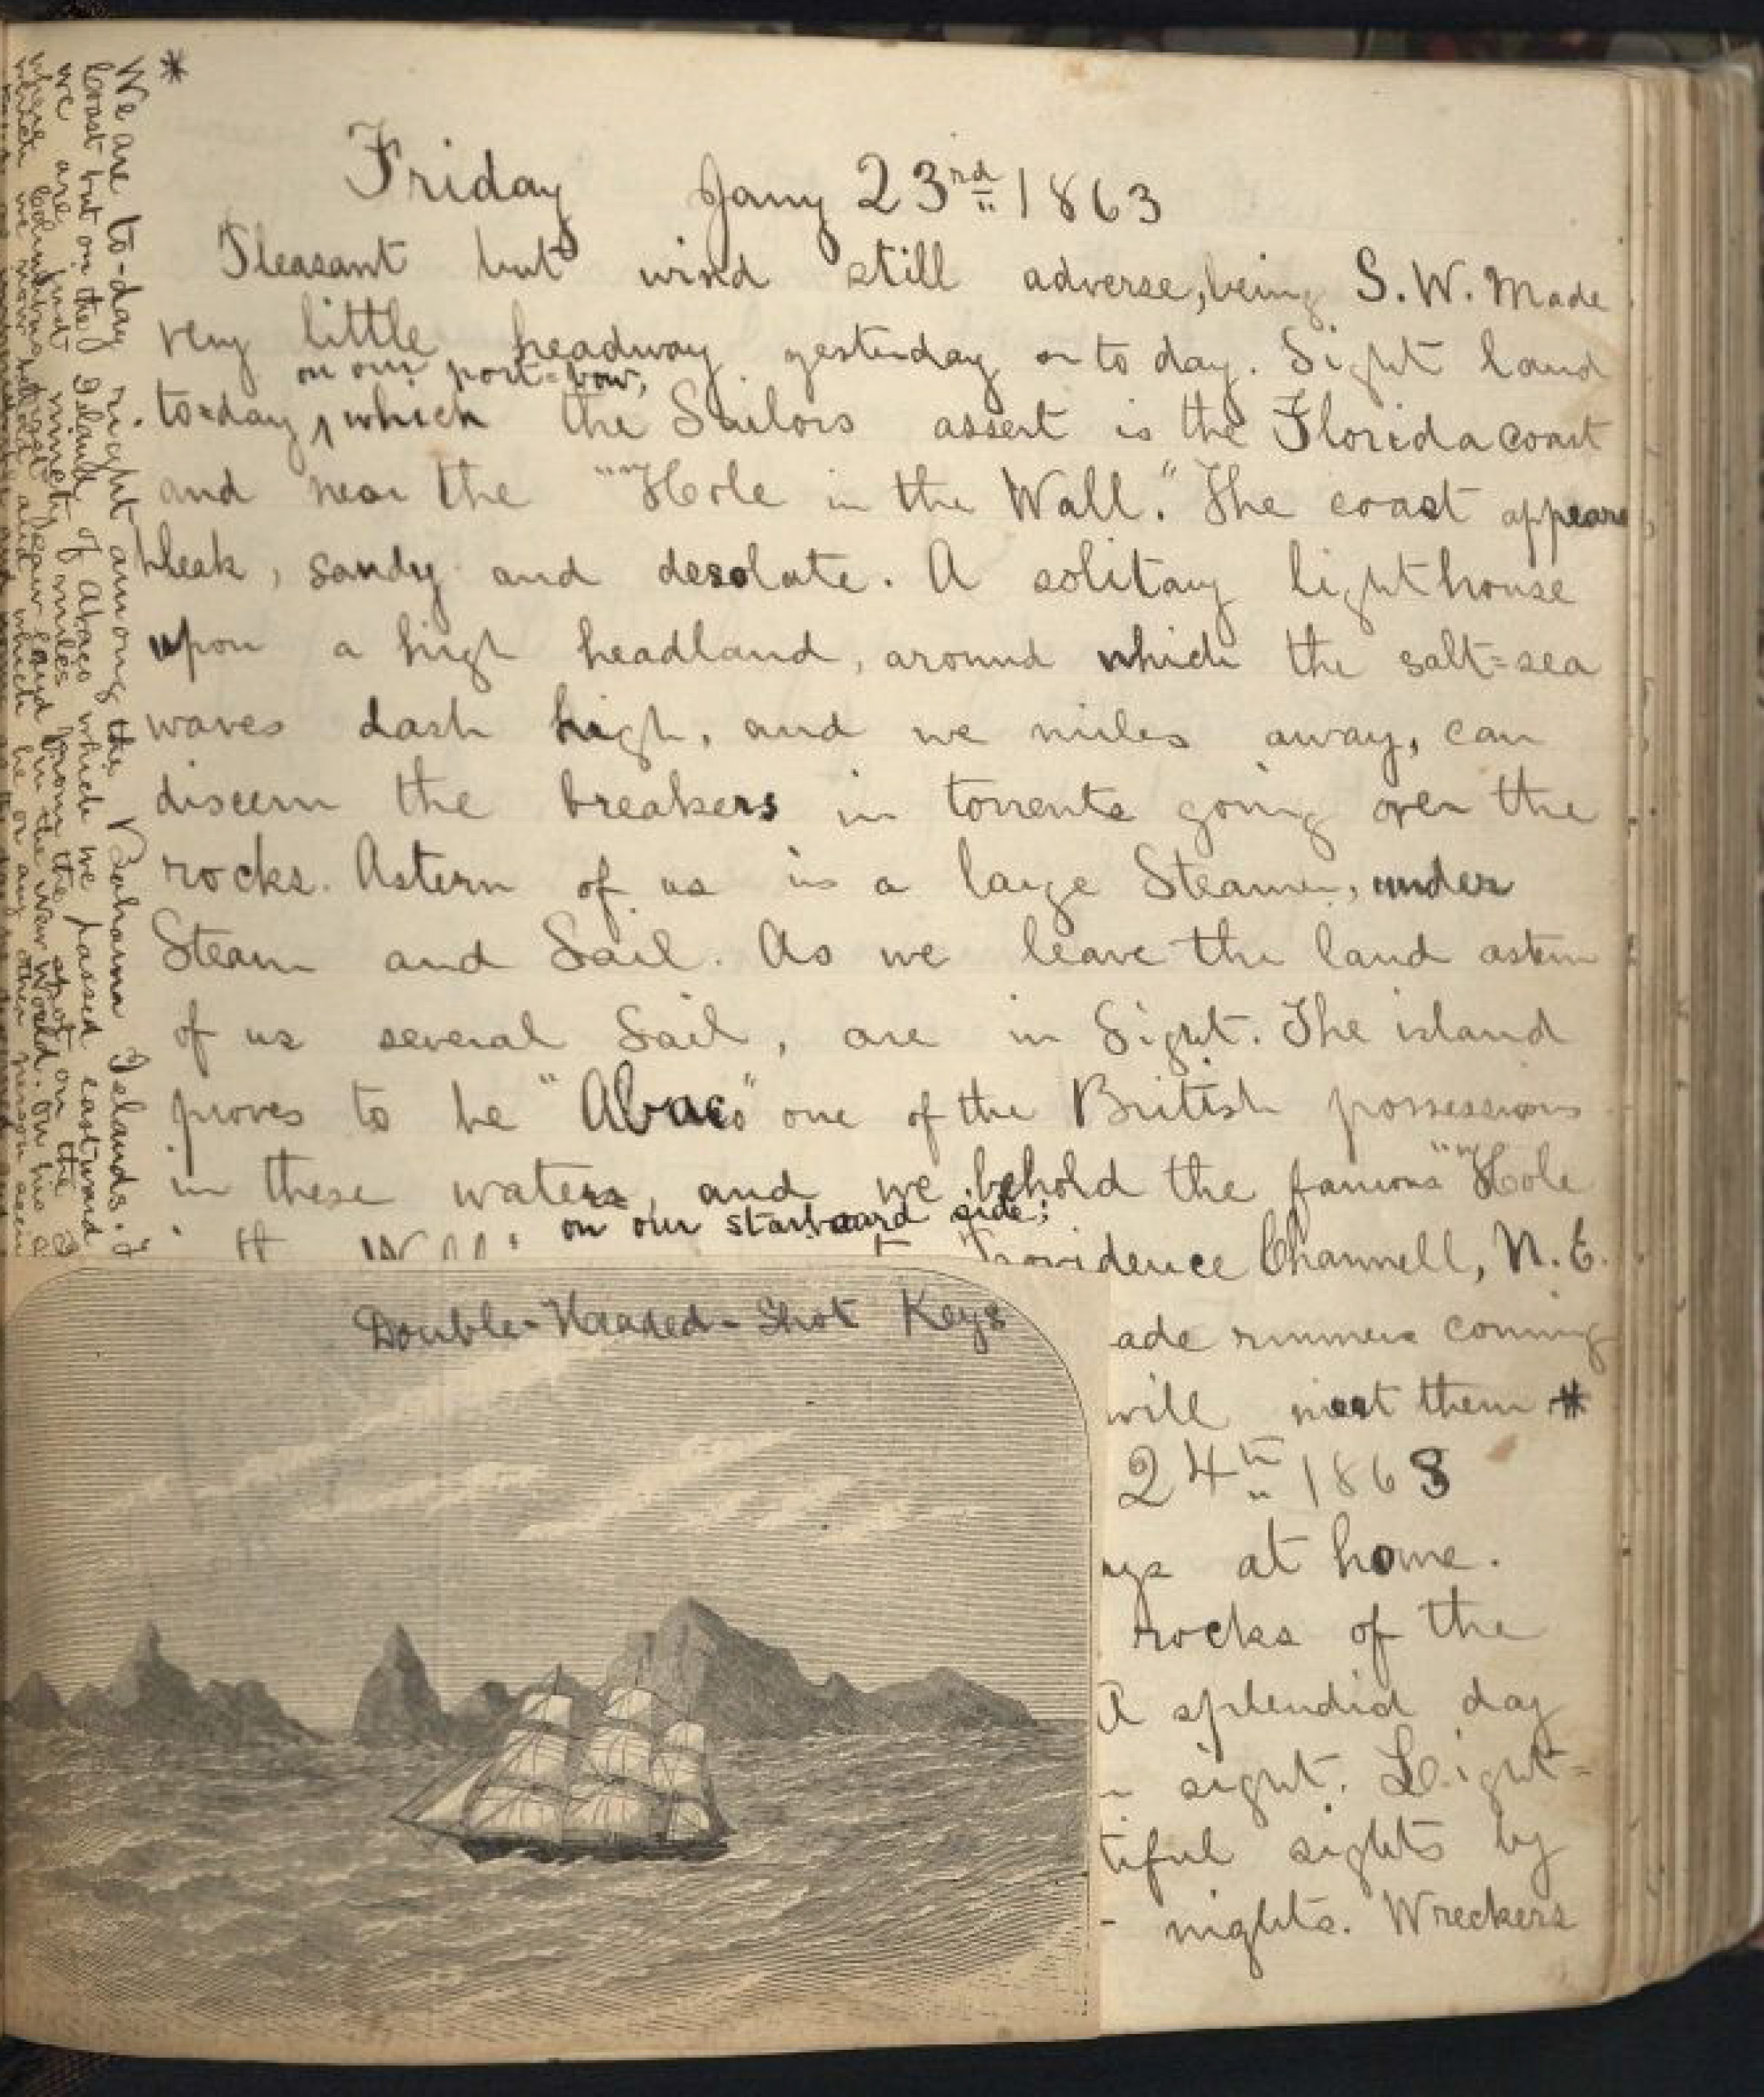 How to scrapbook journal - Journal Entry January 23 1863